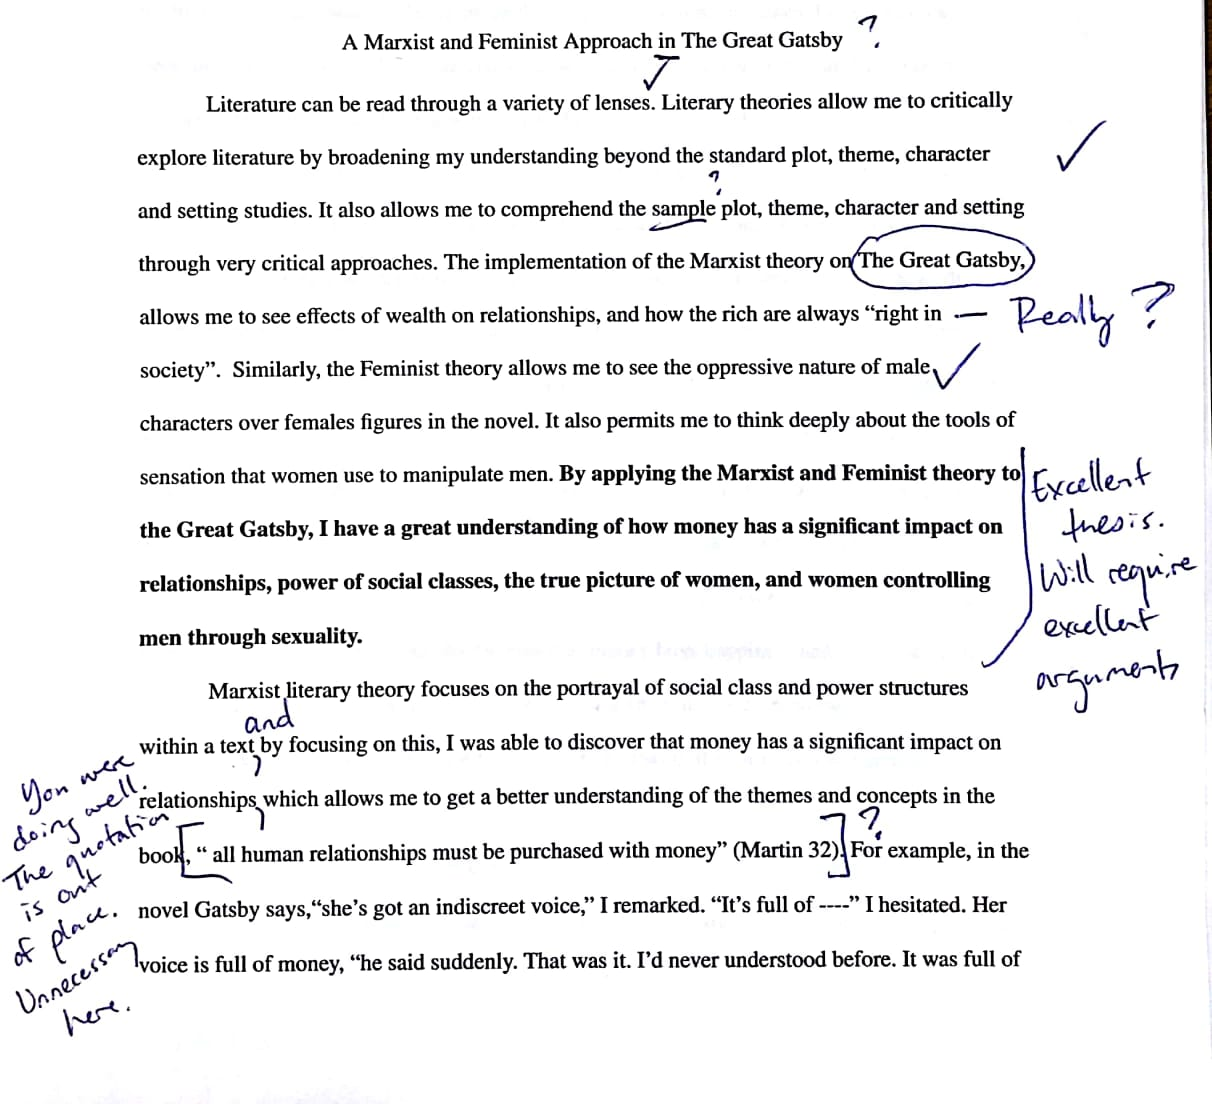 009 Level2b32bsample 1 Research Paper Remarkable Literary Analysis Assignment Mla Example Proposal Full